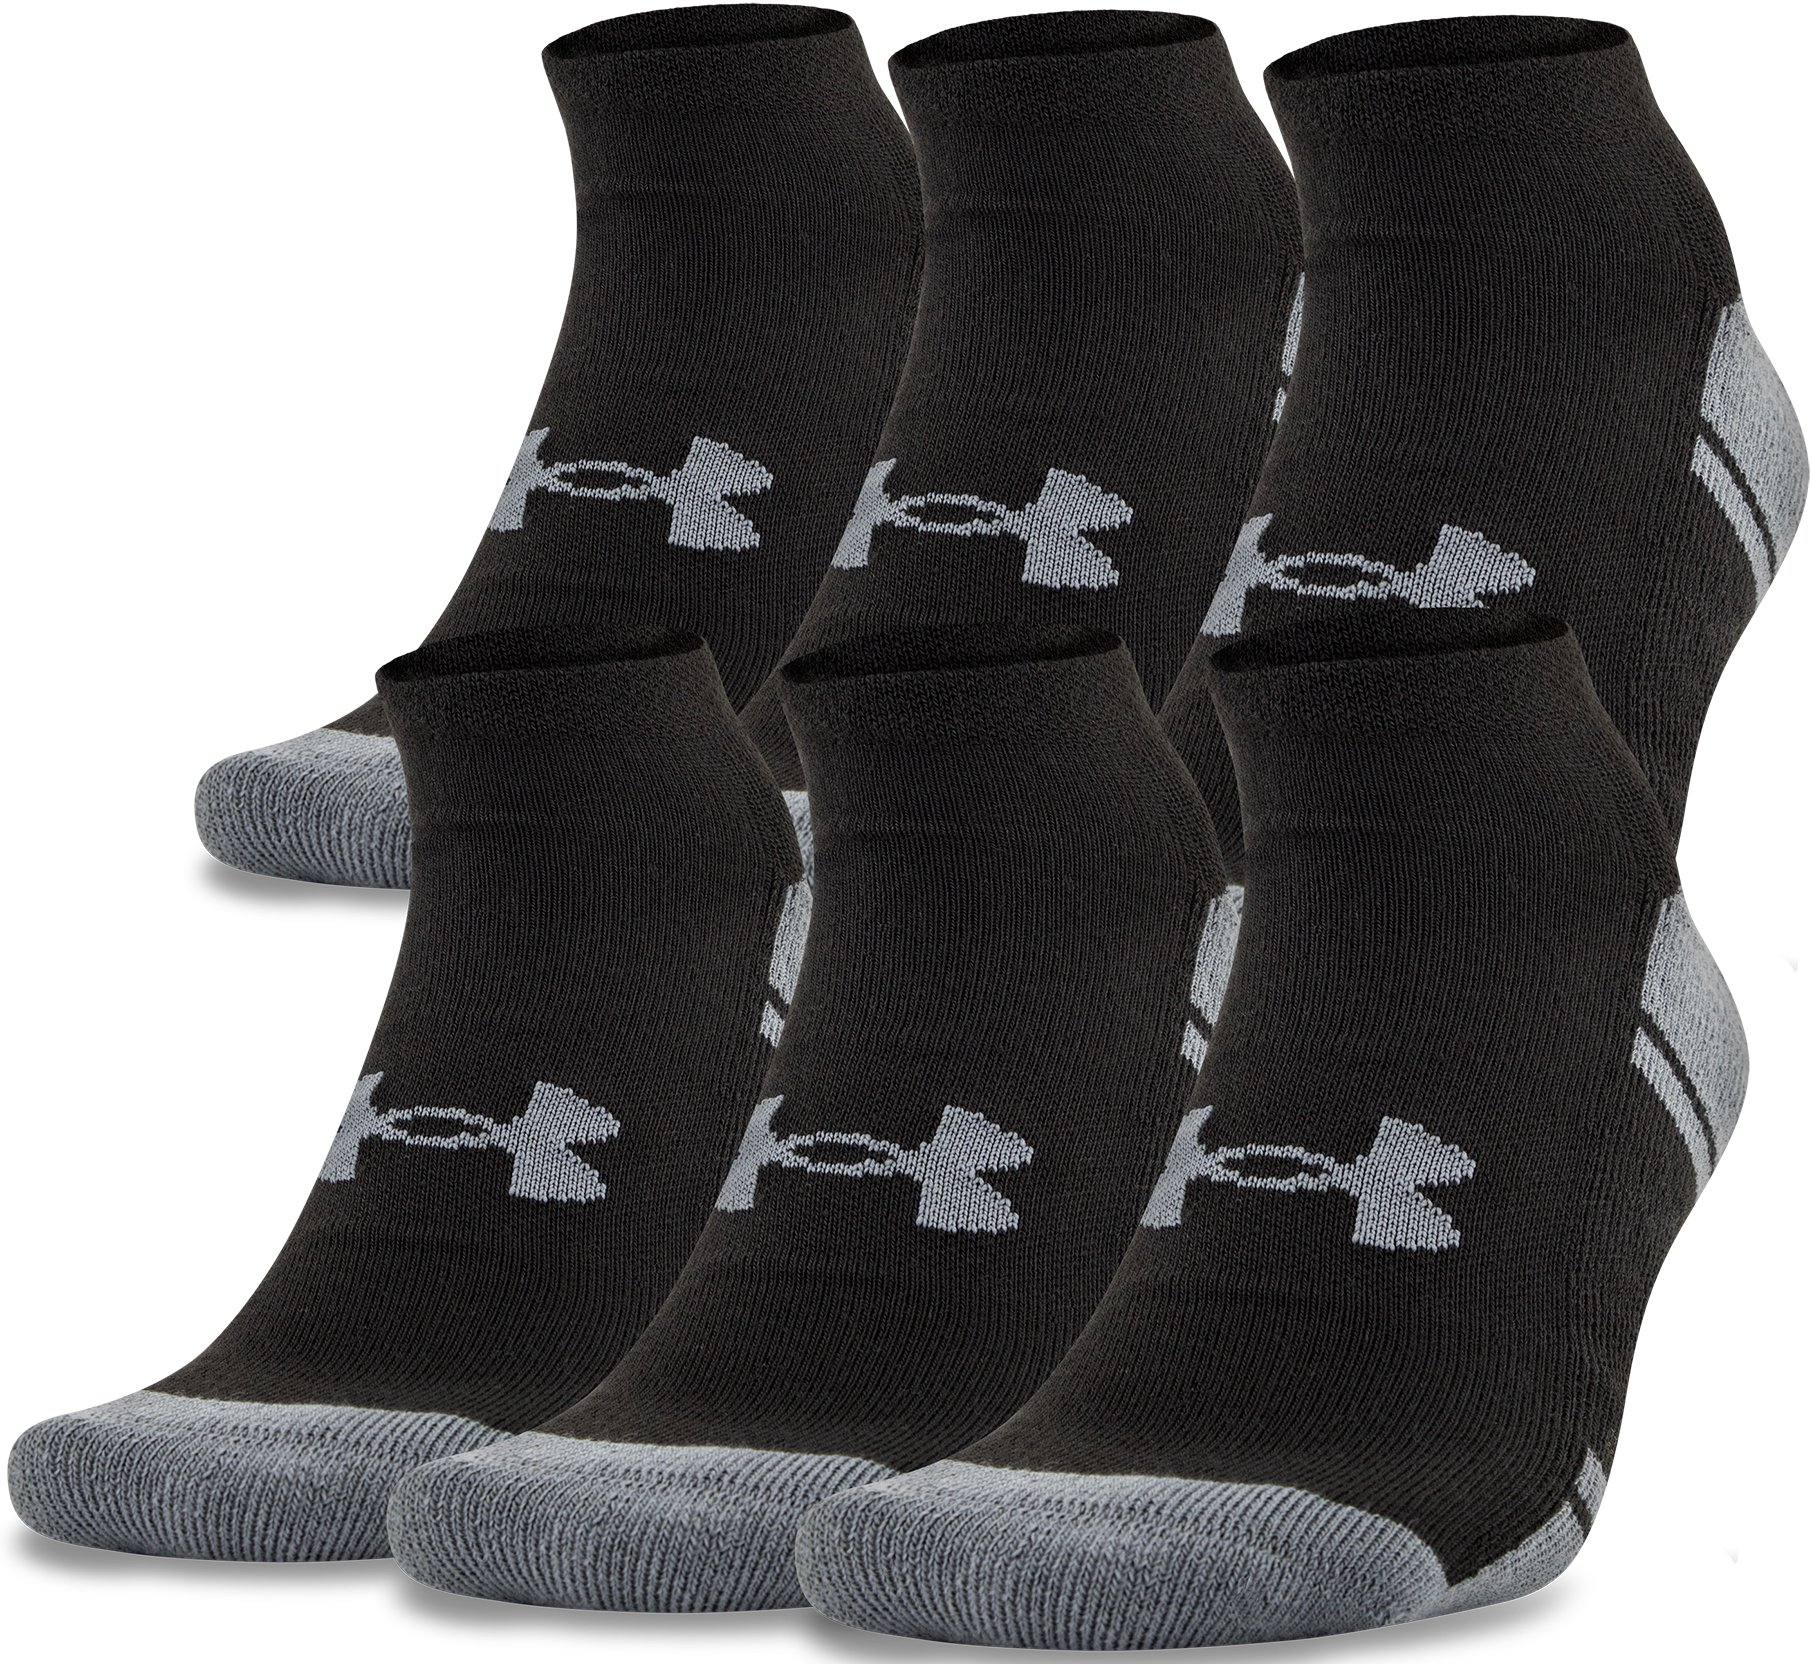 black over the calf socks UA Resistor III No Show Socks – 6-Pack Comfort - These are really comfortable <strong>socks</strong>.